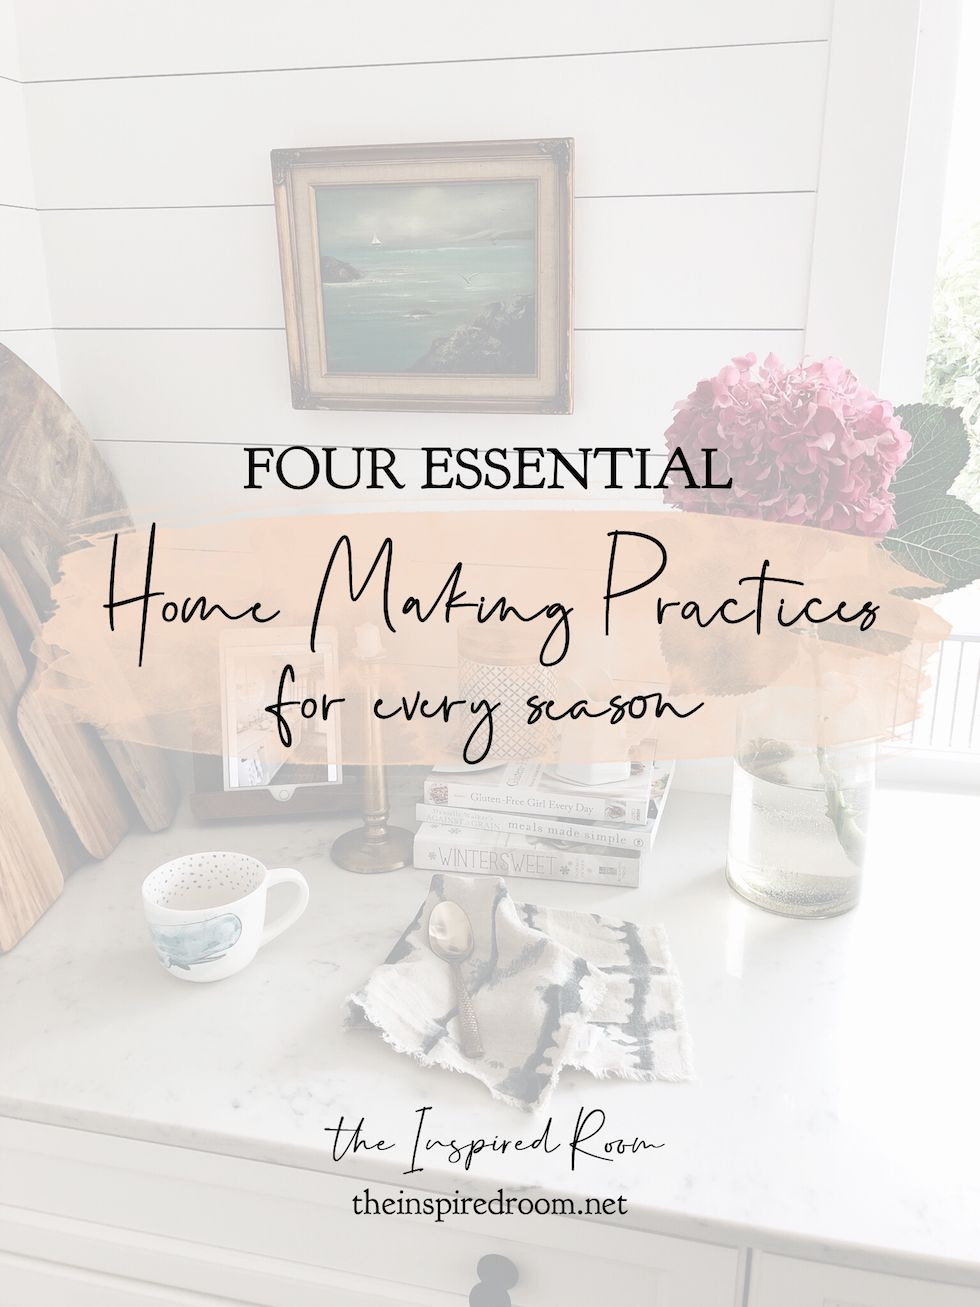 Four Essential Home Making Practices for Every Season